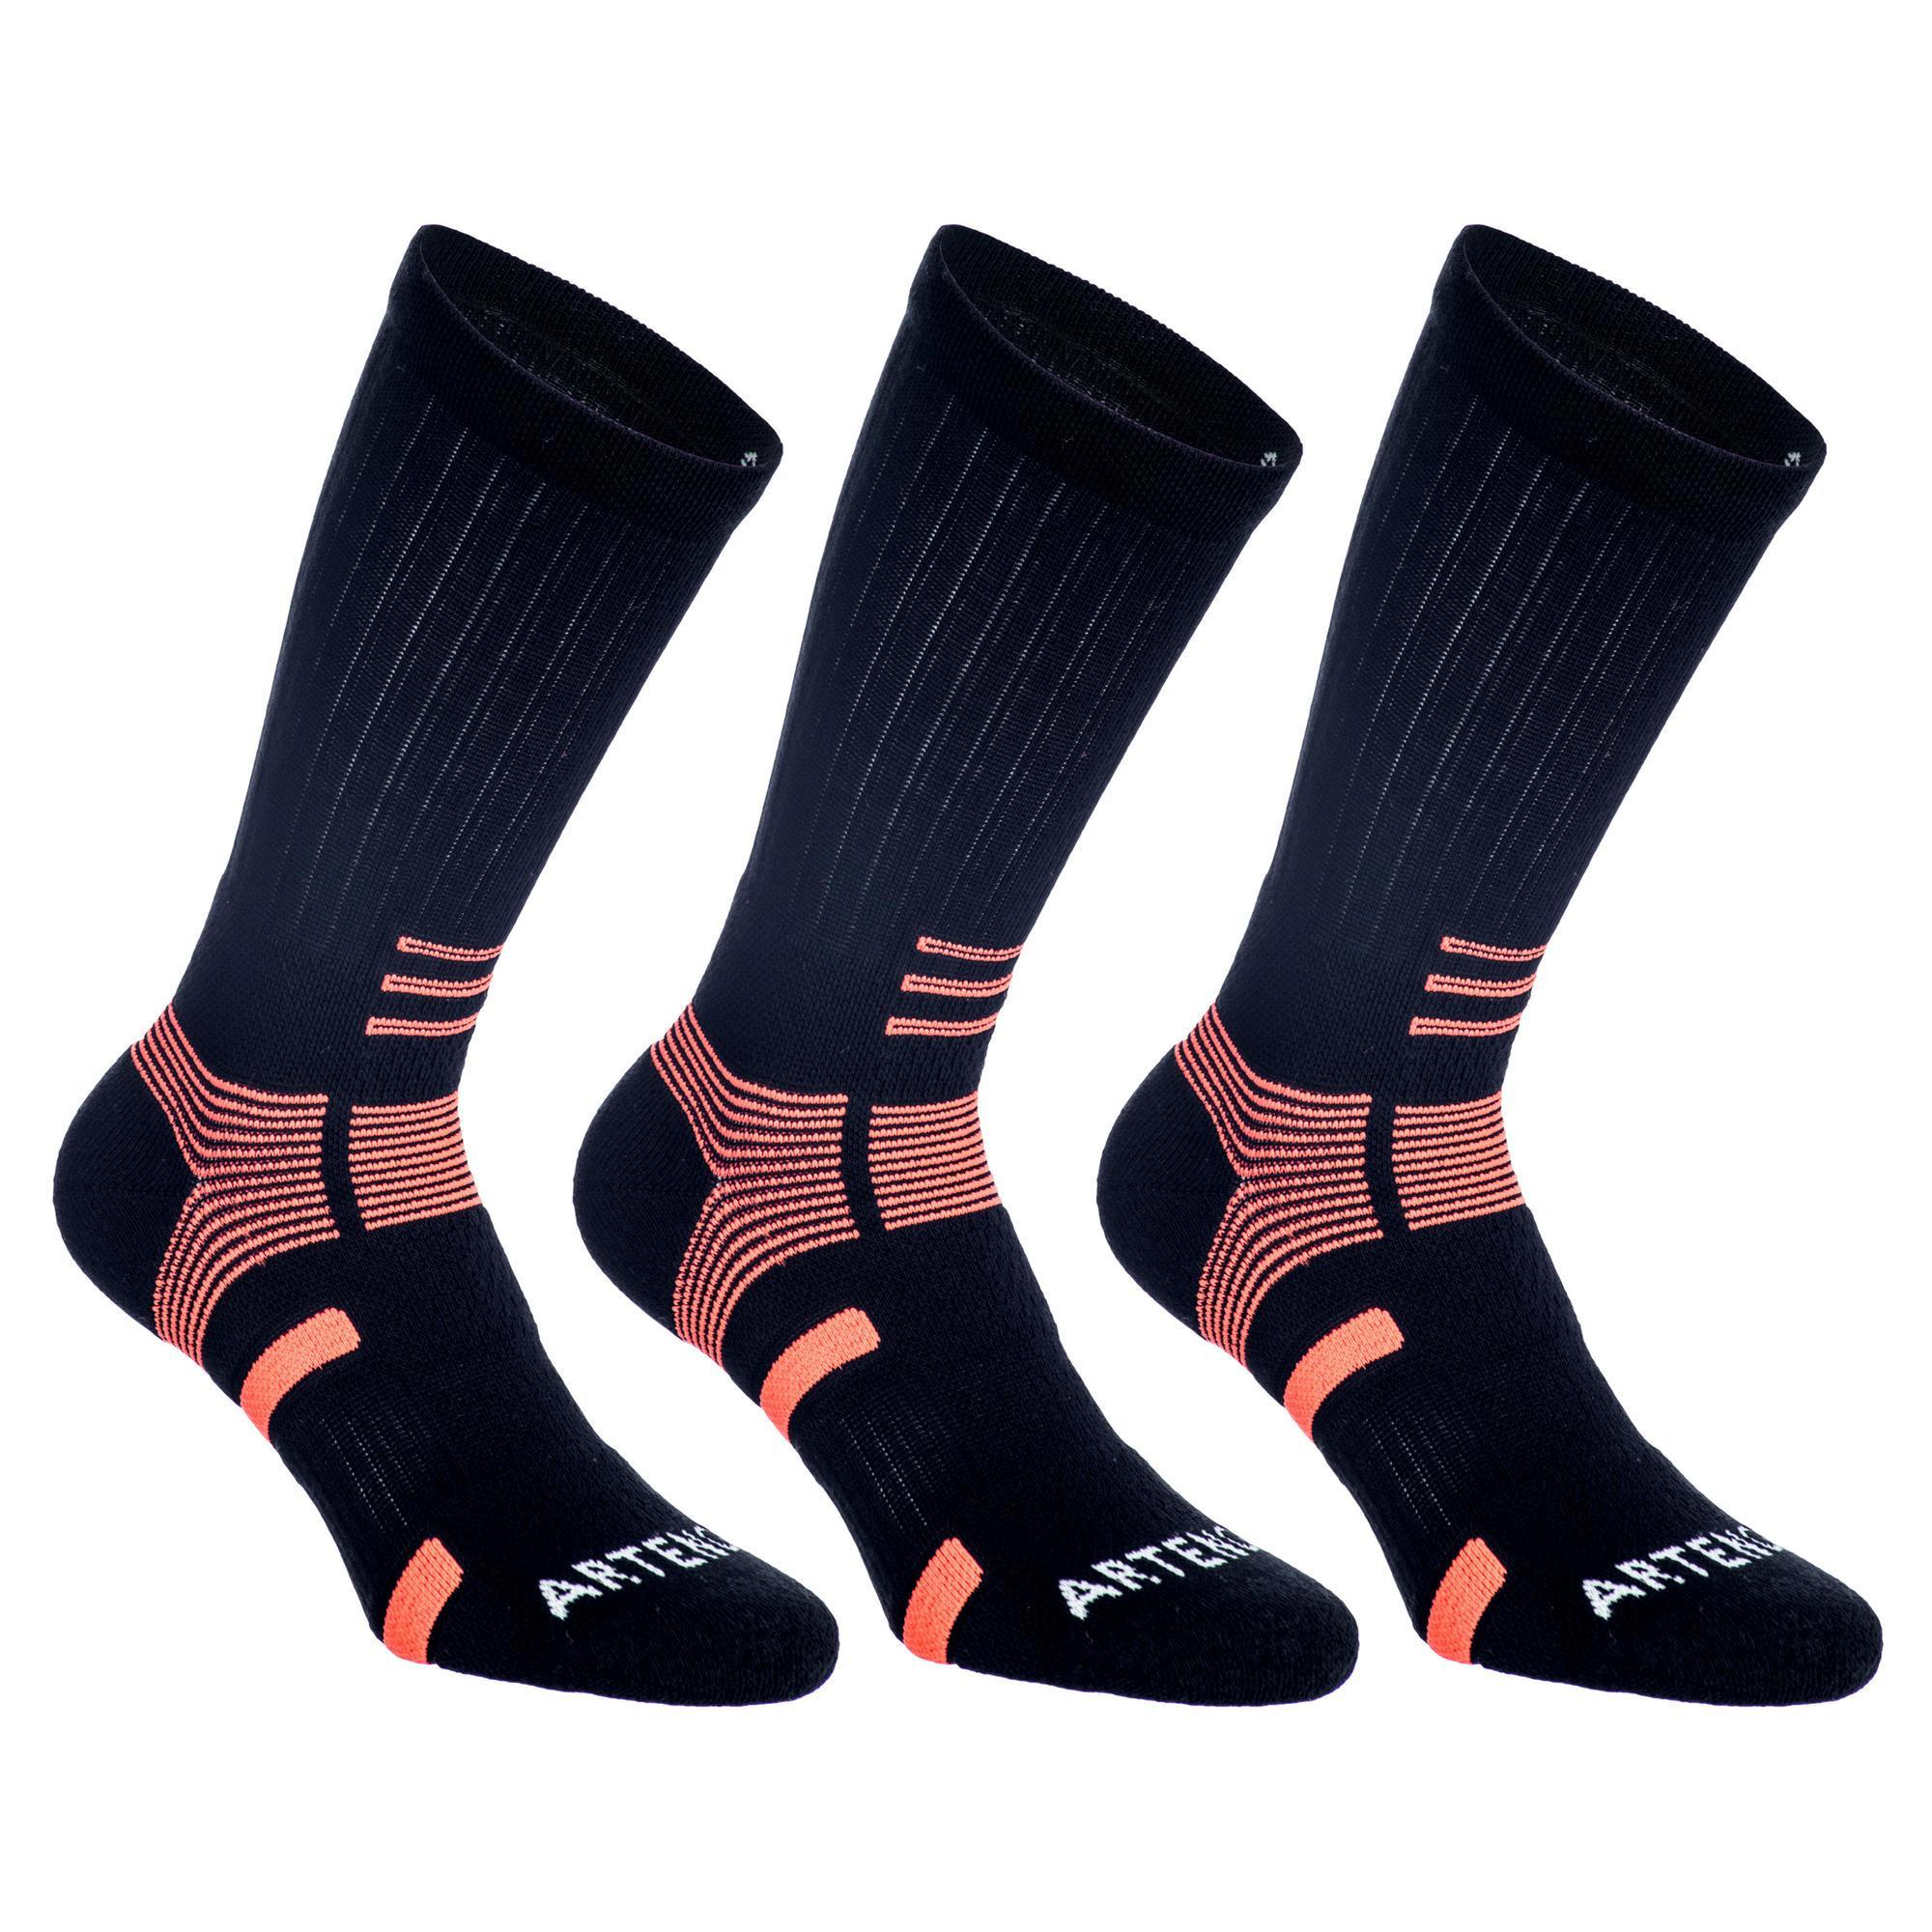 Tennissocken RS 560 High 3er-Pack schwarz/orange Artengo | Sportbekleidung > Funktionswäsche | Schwarz - Orange | Artengo